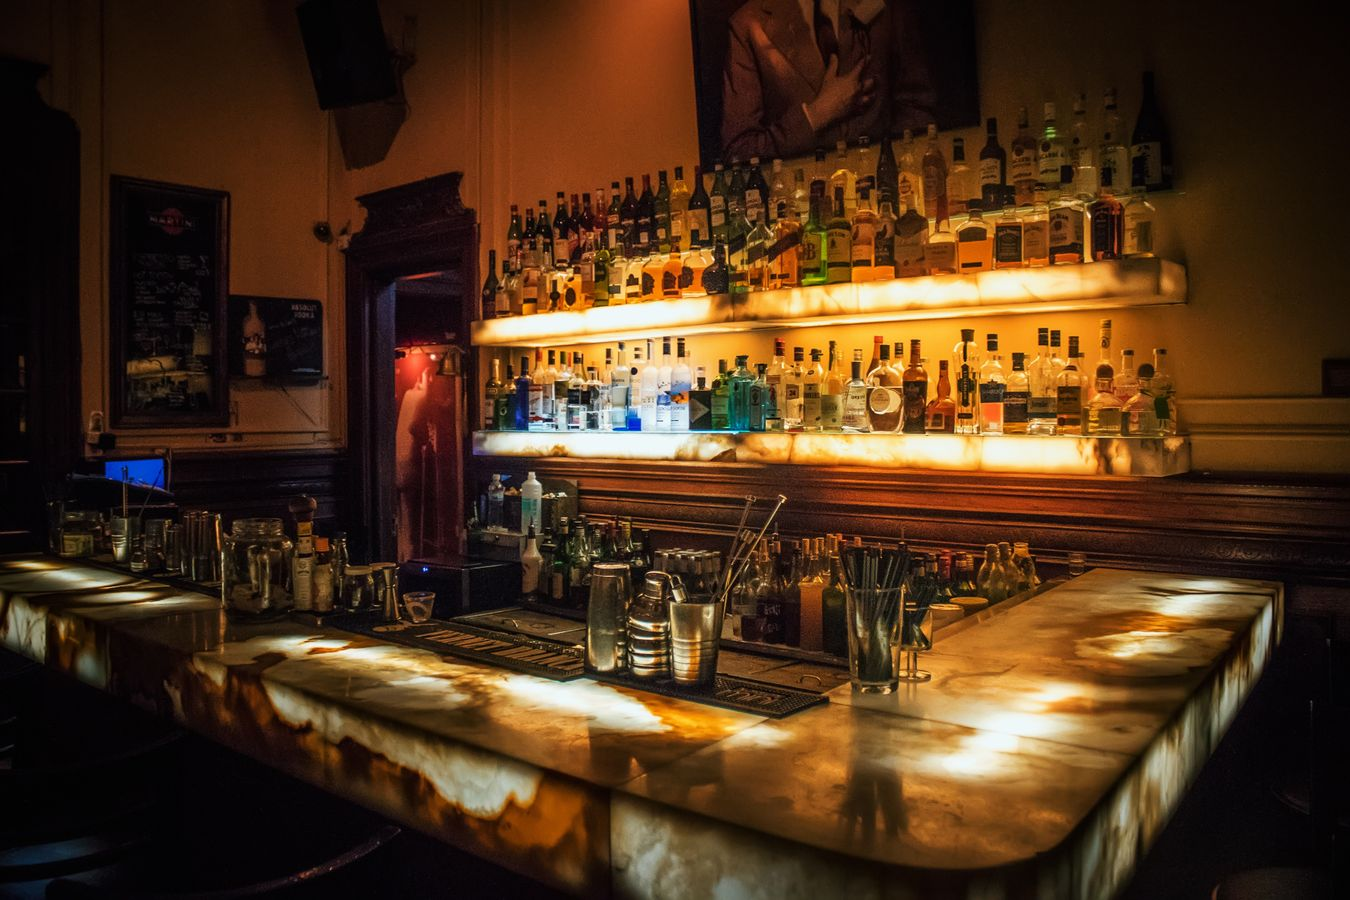 Top des bars hypes à réserver ou privatiser gratuitement à Paris